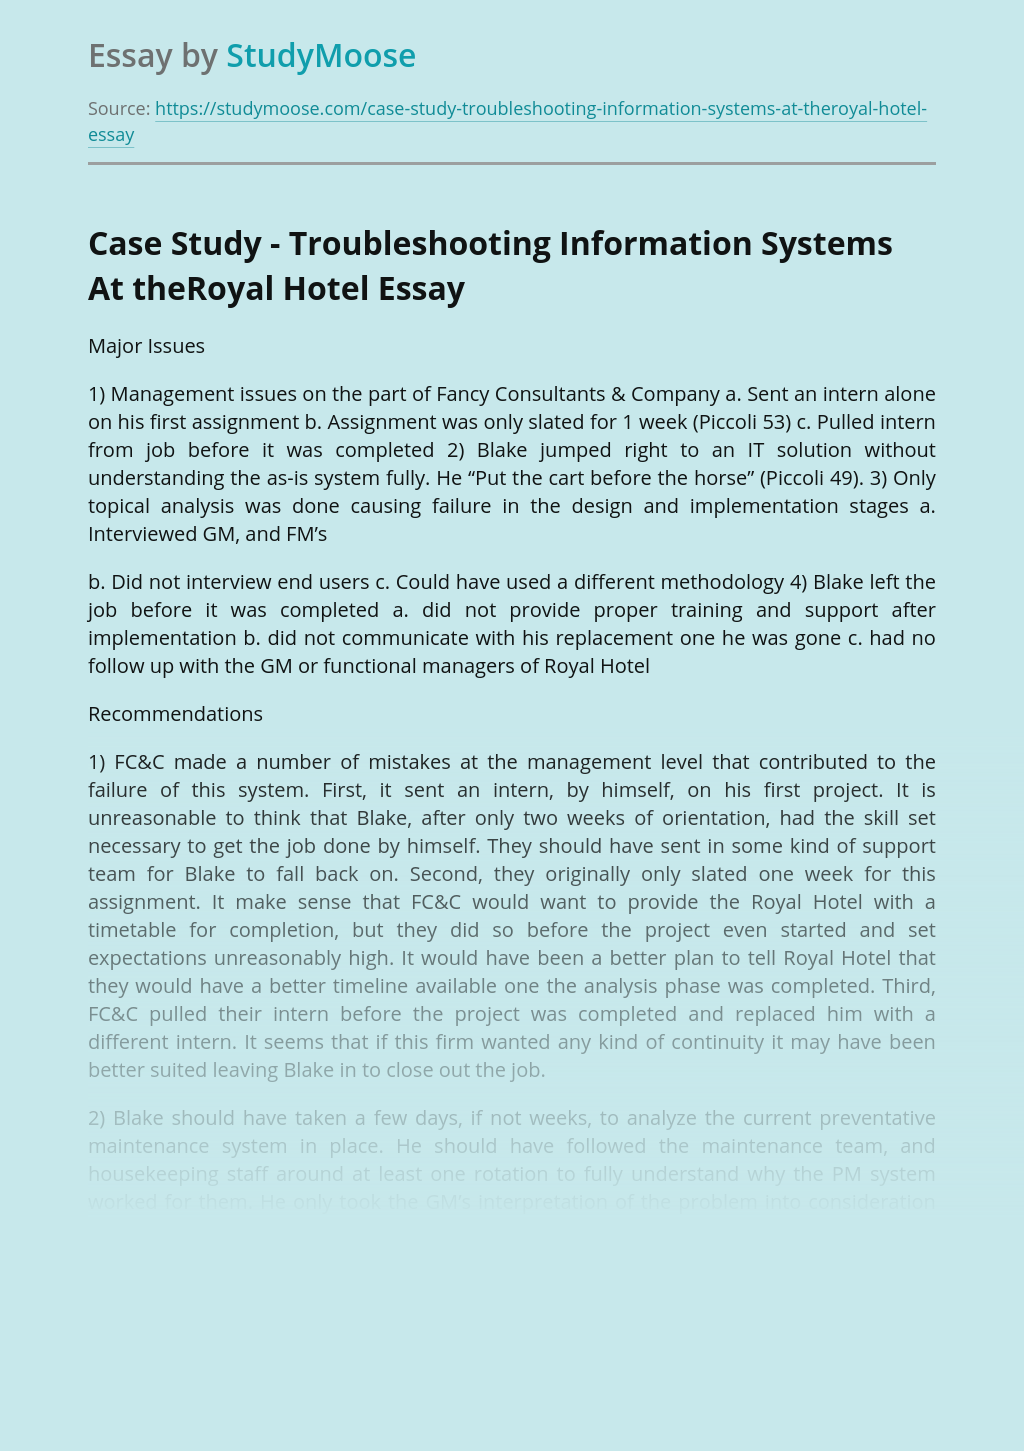 Case Study - Troubleshooting Information Systems At theRoyal Hotel